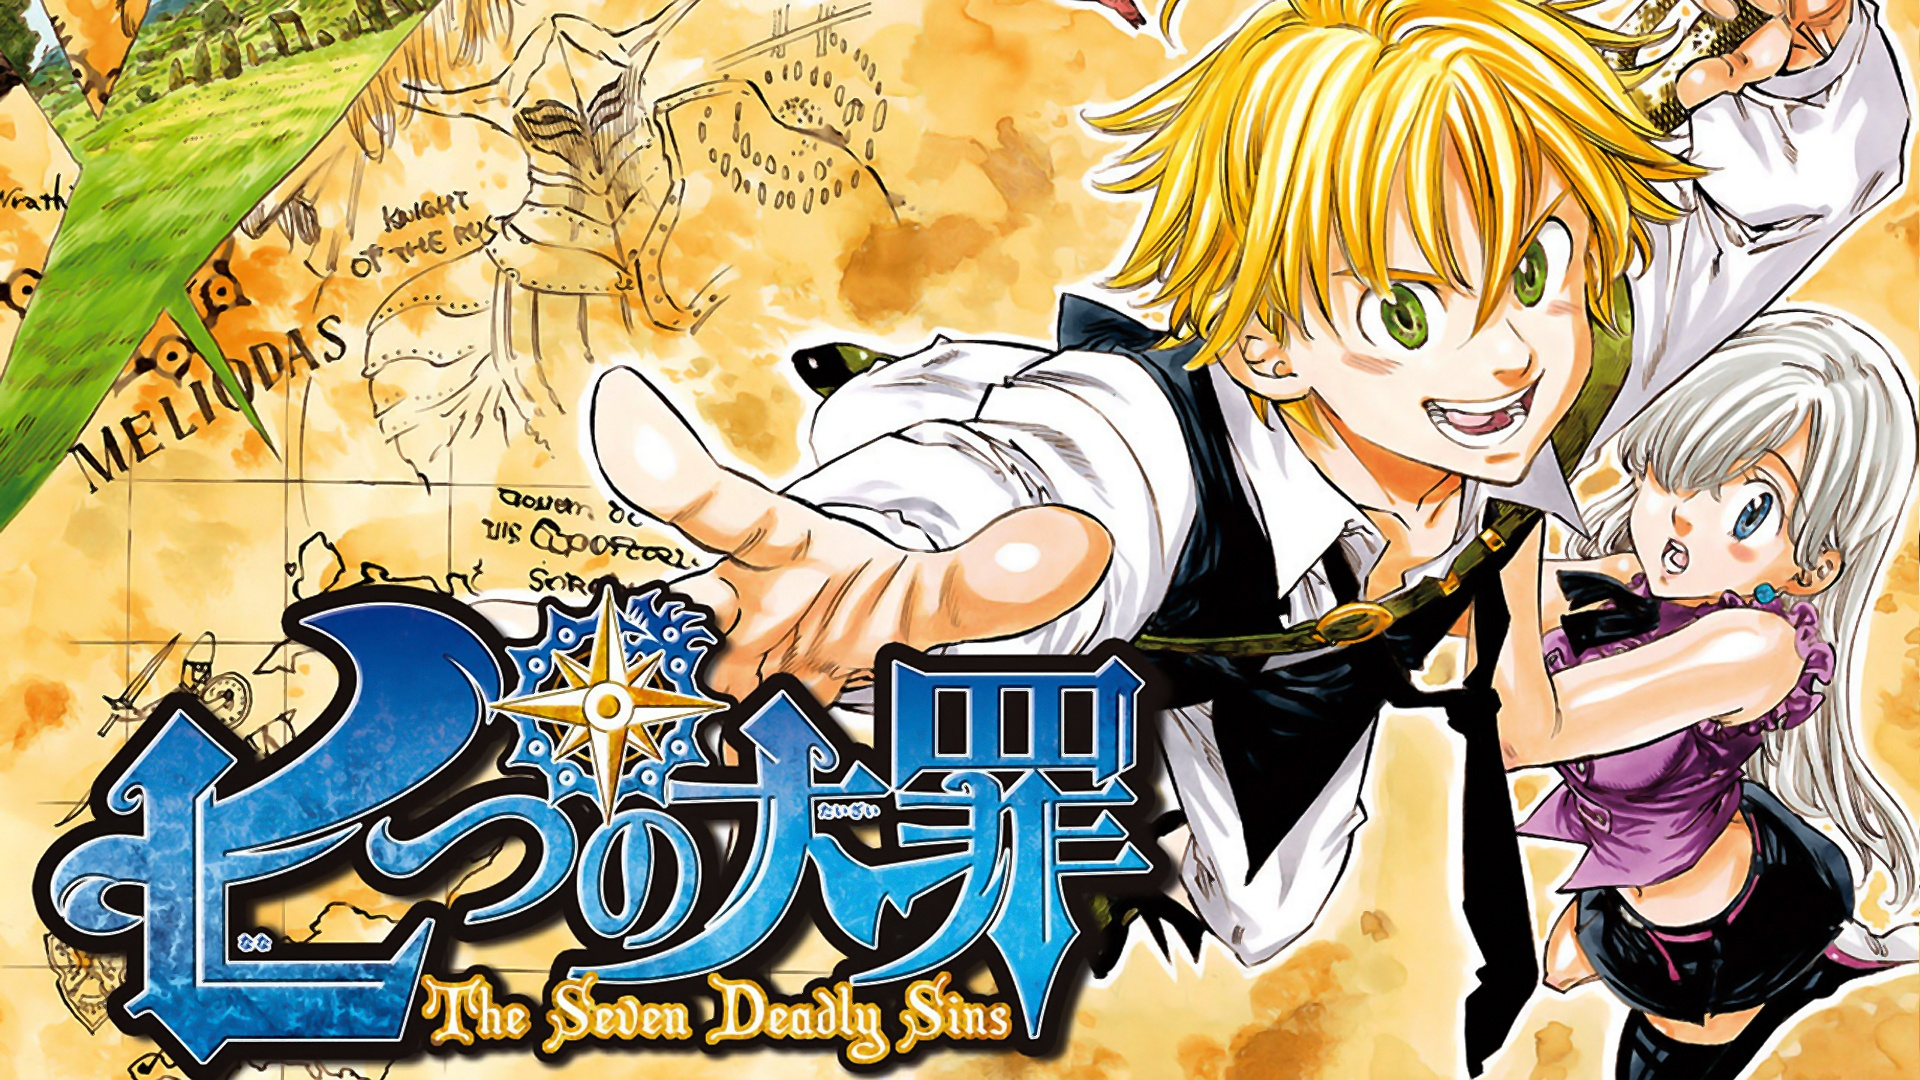 Nanatsu No Taizai Images Seven Deadly Sins Anime Meliodas Elizabeth X Hd Wallpaper And